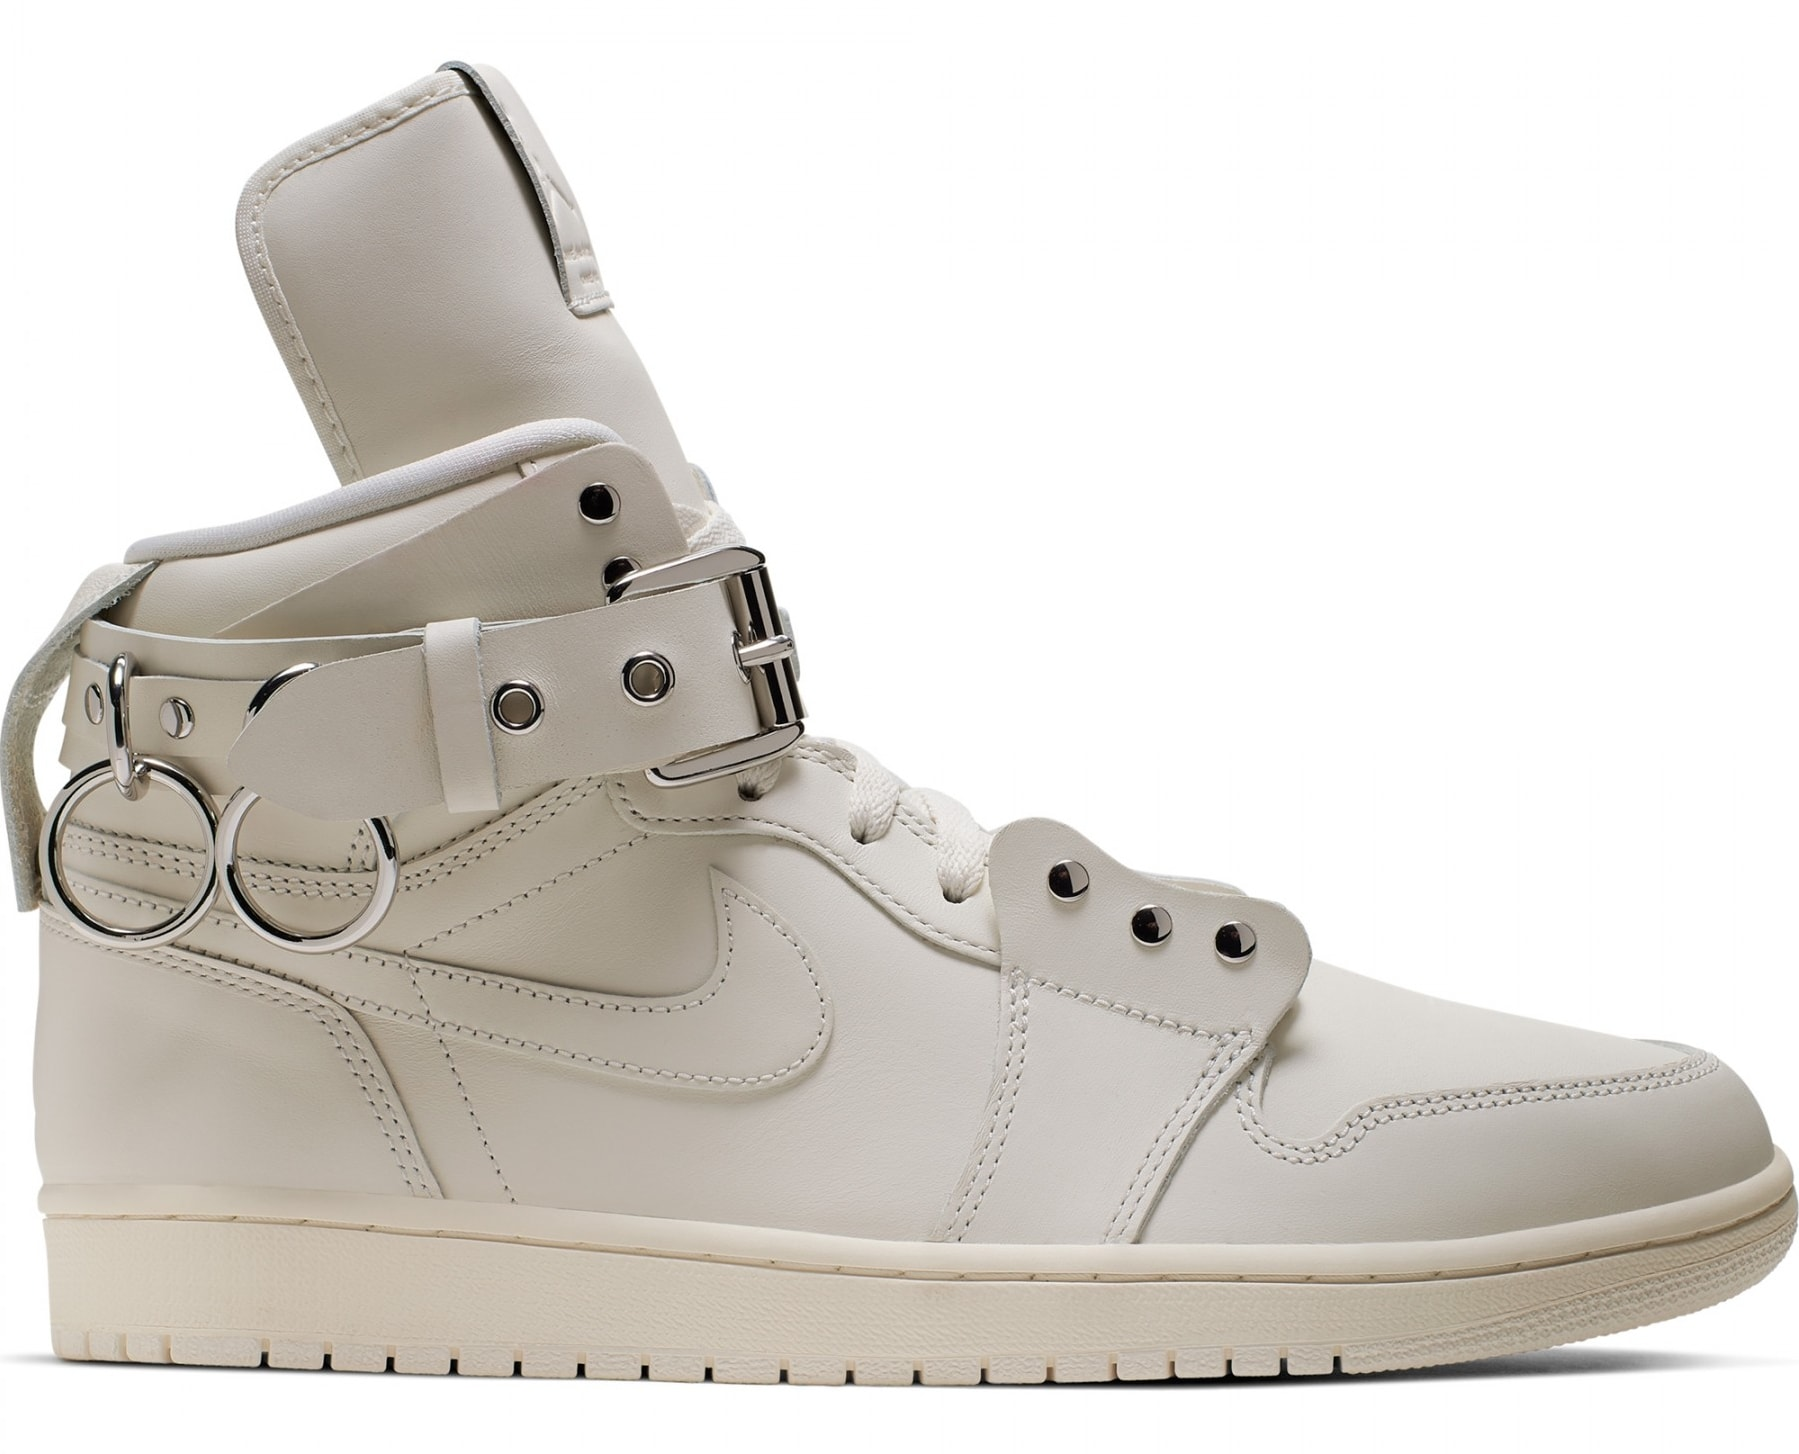 comme-des-garcons-air-jordan-1-high-white-cn5738-100-lateral